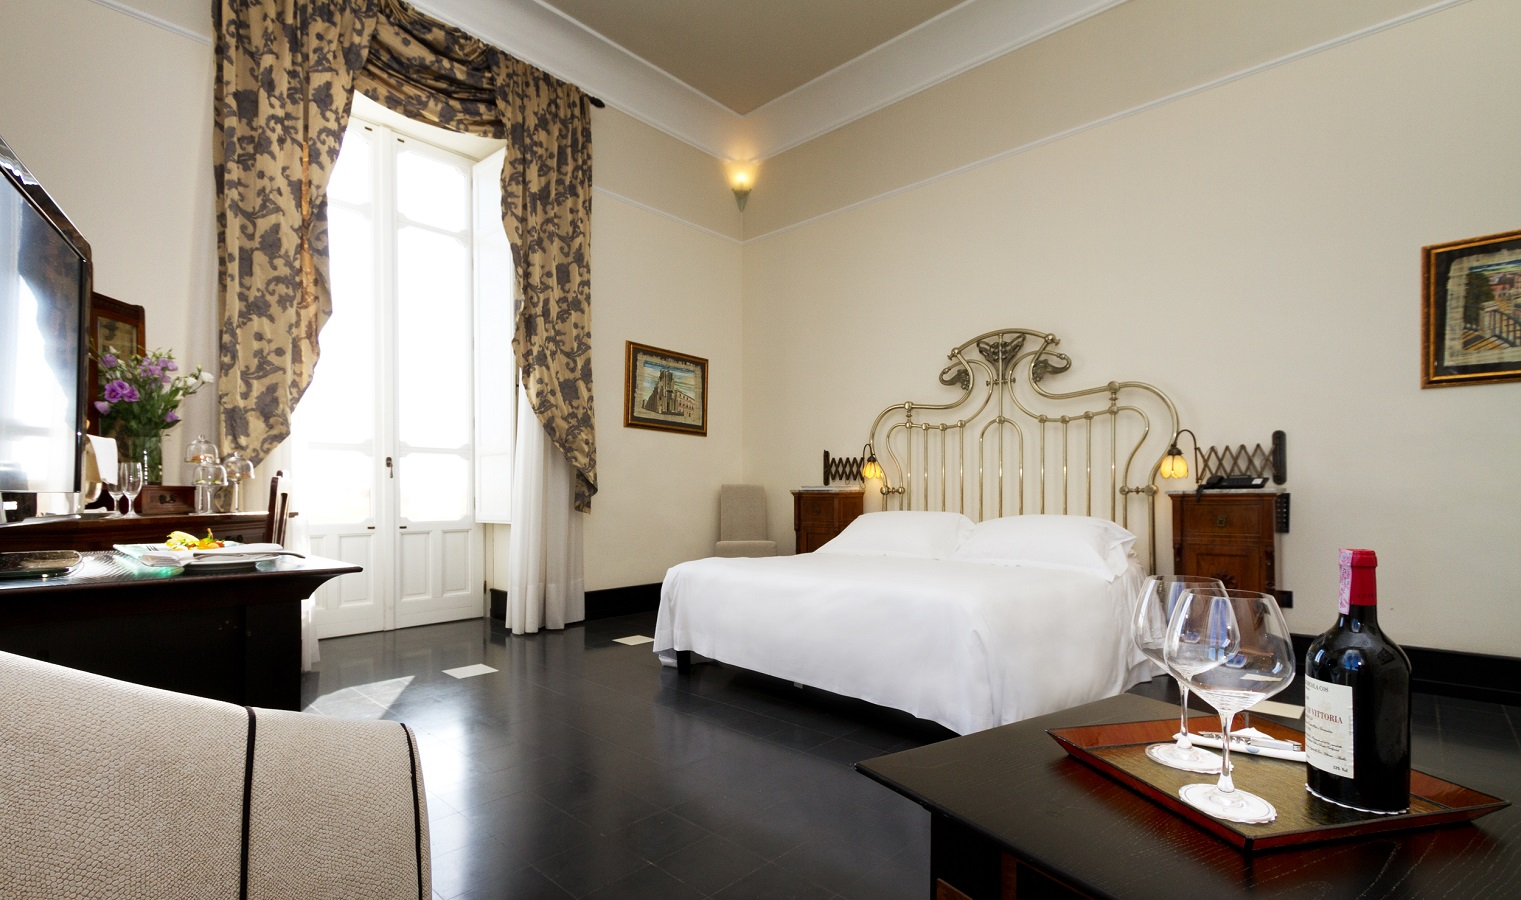 Camere grand hotel des trangers siracusa for Hotel des etrangers siracusa